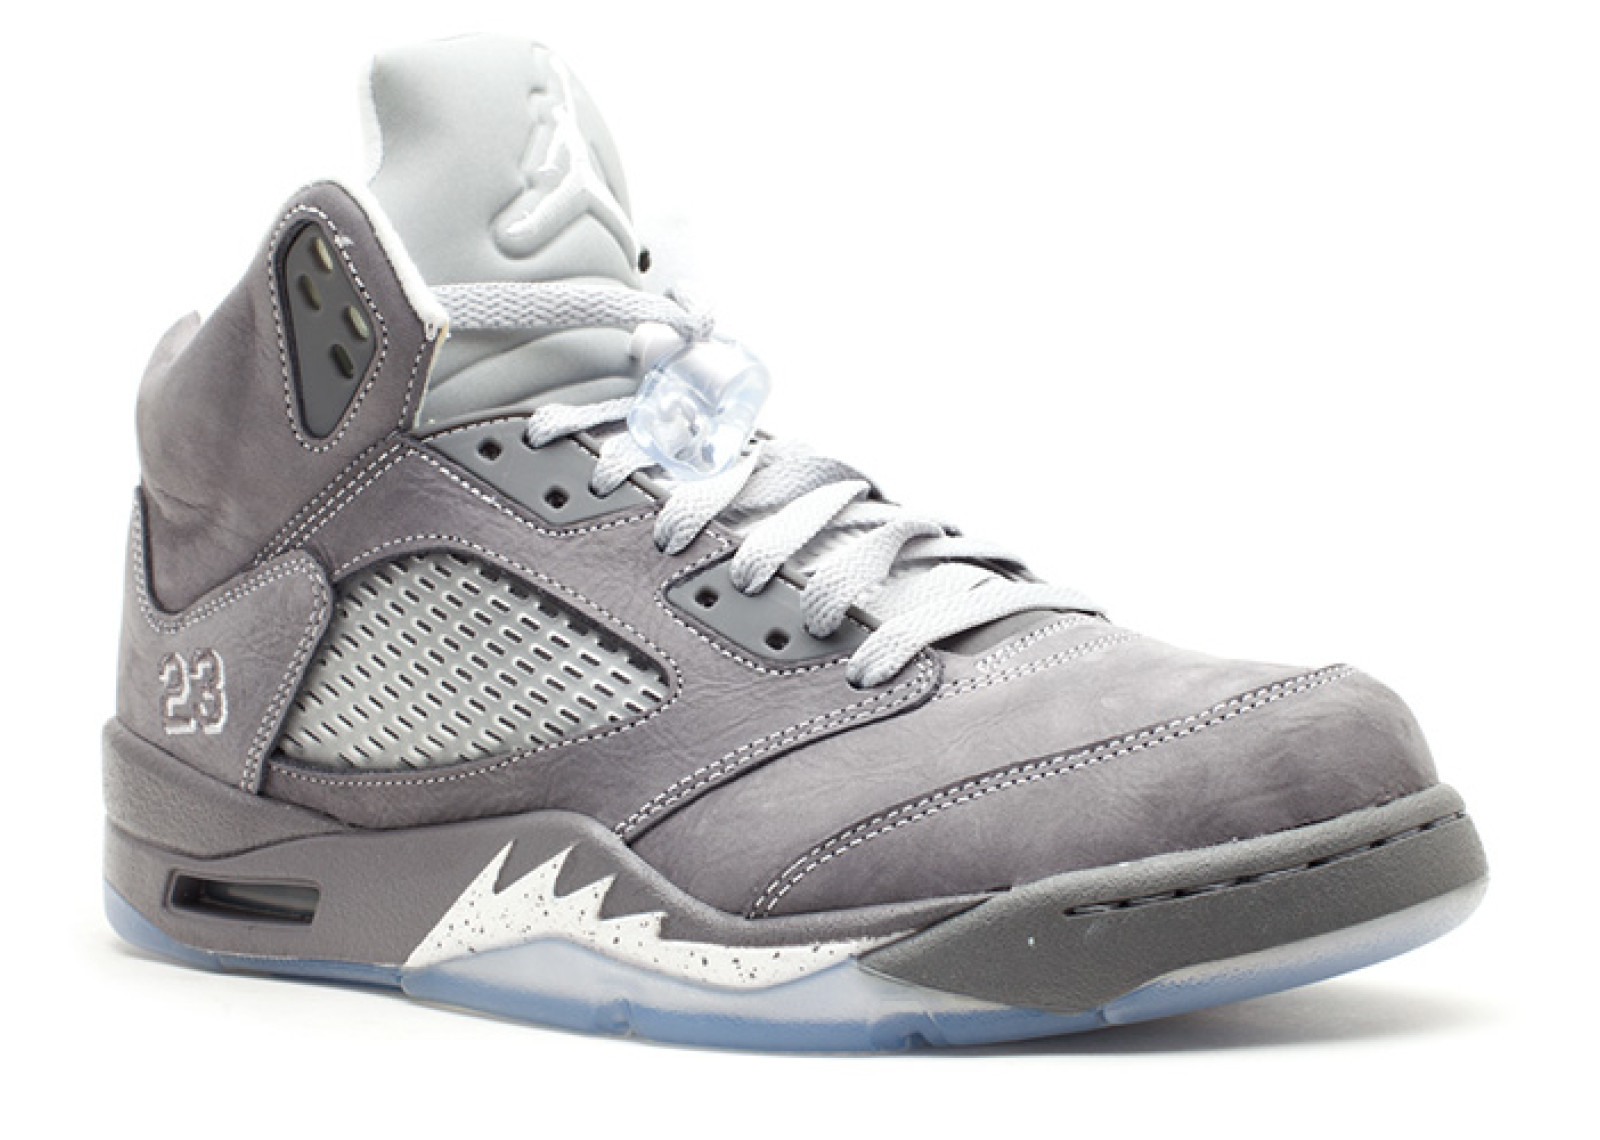 super popular 40ae4 cc76e Air Jordan - Men - Air Jordan 5 Retro 'Wolf Grey' - 136027-005 - Size 13